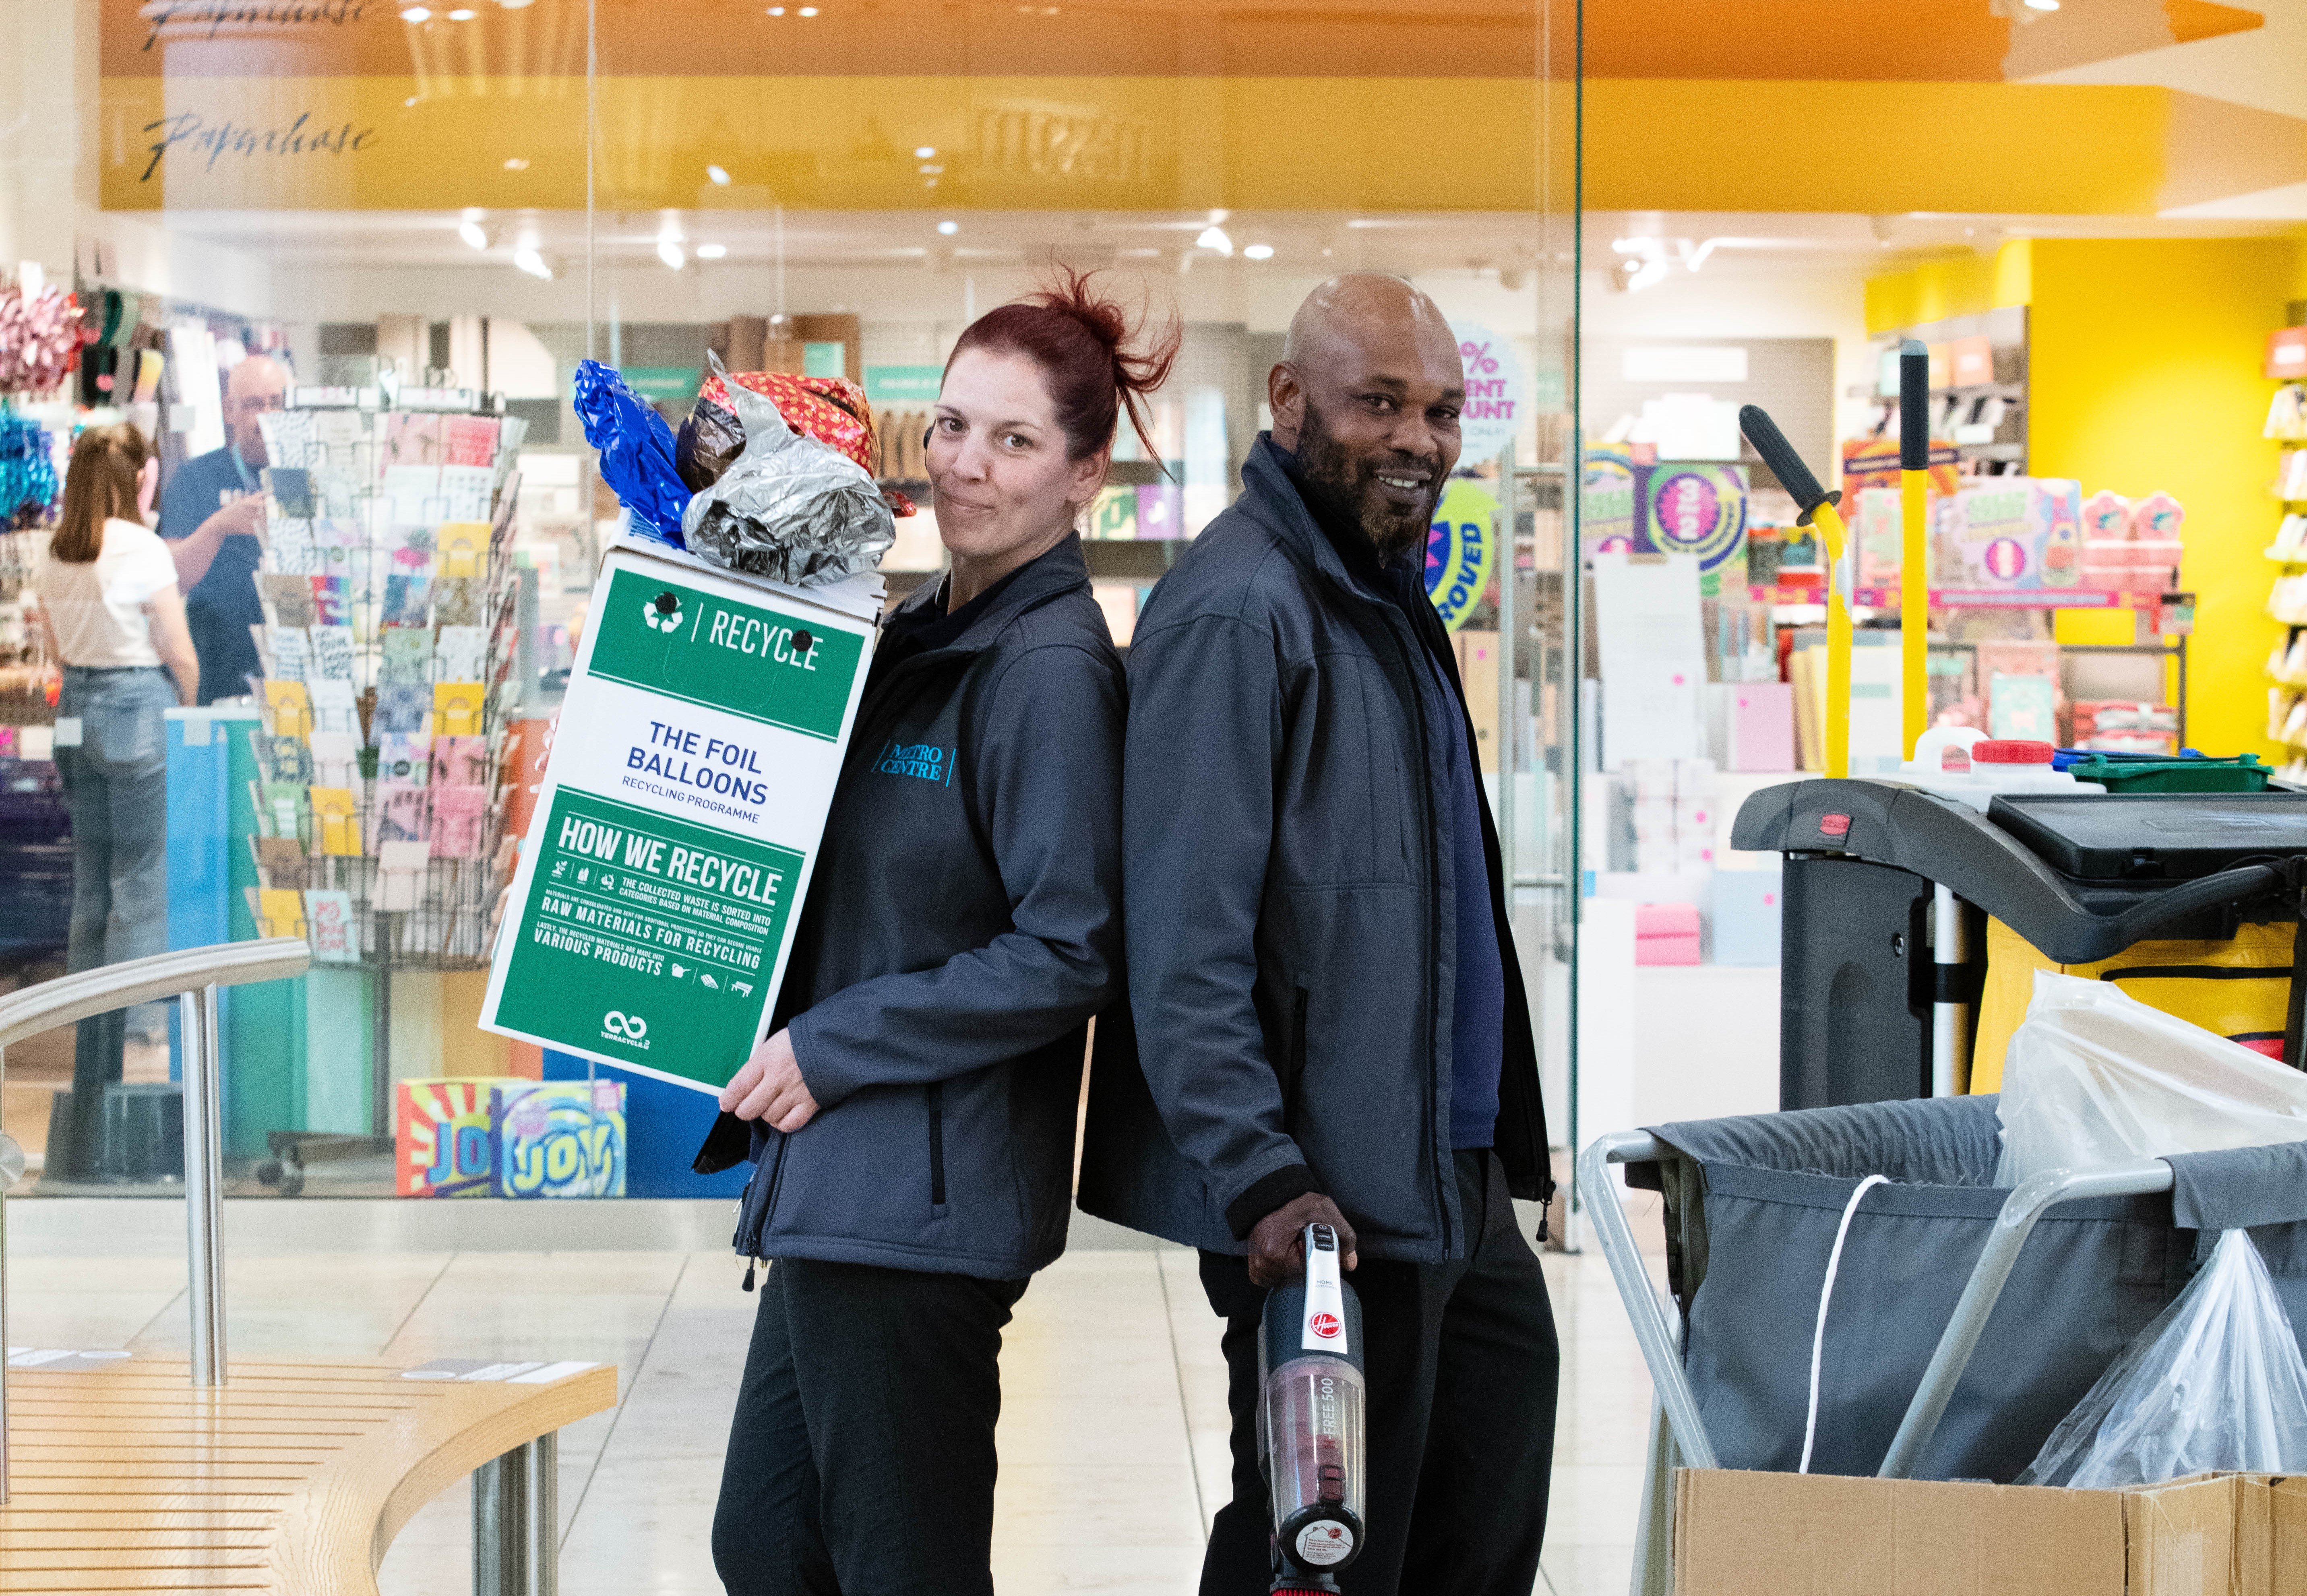 Man and woman stand back to back in centre of image. Woman on the left has red hair tied up in a bun and is holding a cardboard recycling box. Man beside her is bald and has a short beard. He is holding a vacuum cleaner. Both are wearing grey 'Metrocentre' branded fleeces.